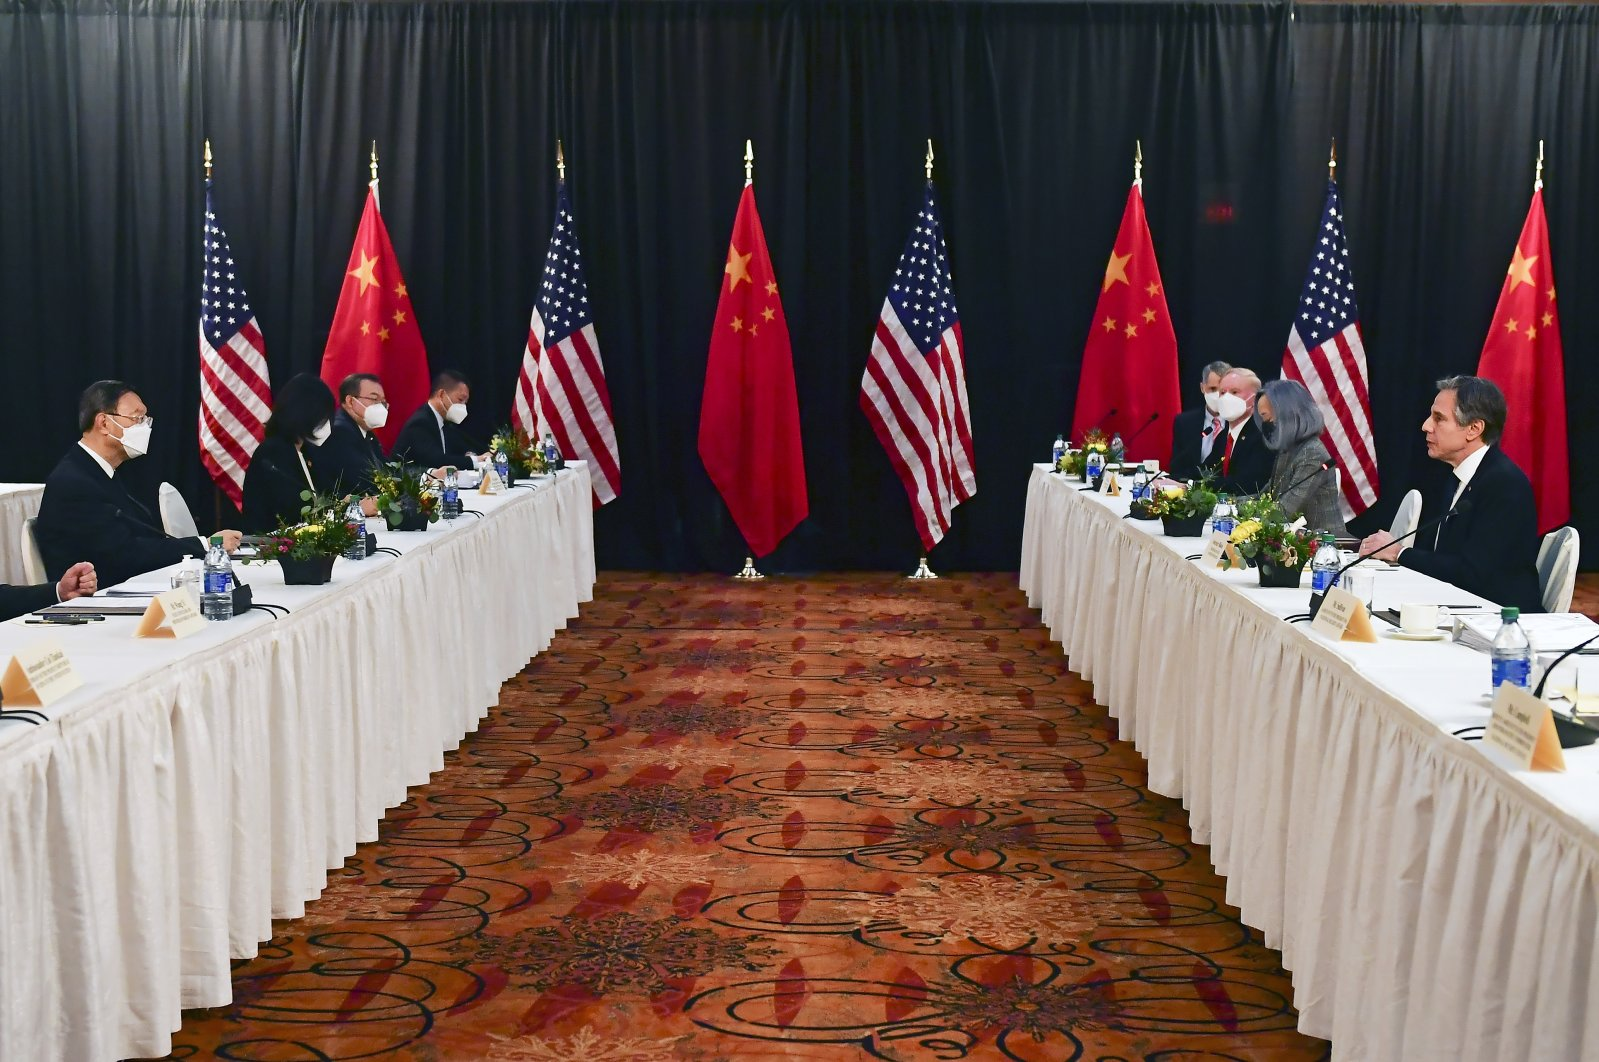 China's State Councilor Wang Yi (L) and Chinese Communist Party foreign affairs chief Yang Jiechi (2nd from L) listen as Secretary of State Antony Blinken (2nd from R) speaks while sitting next to National Security Adviser Jake Sullivan (R) during the opening session of US-China talks at the Captain Cook Hotel in Anchorage, Alaska, March 18, 2021. (AP Photo)